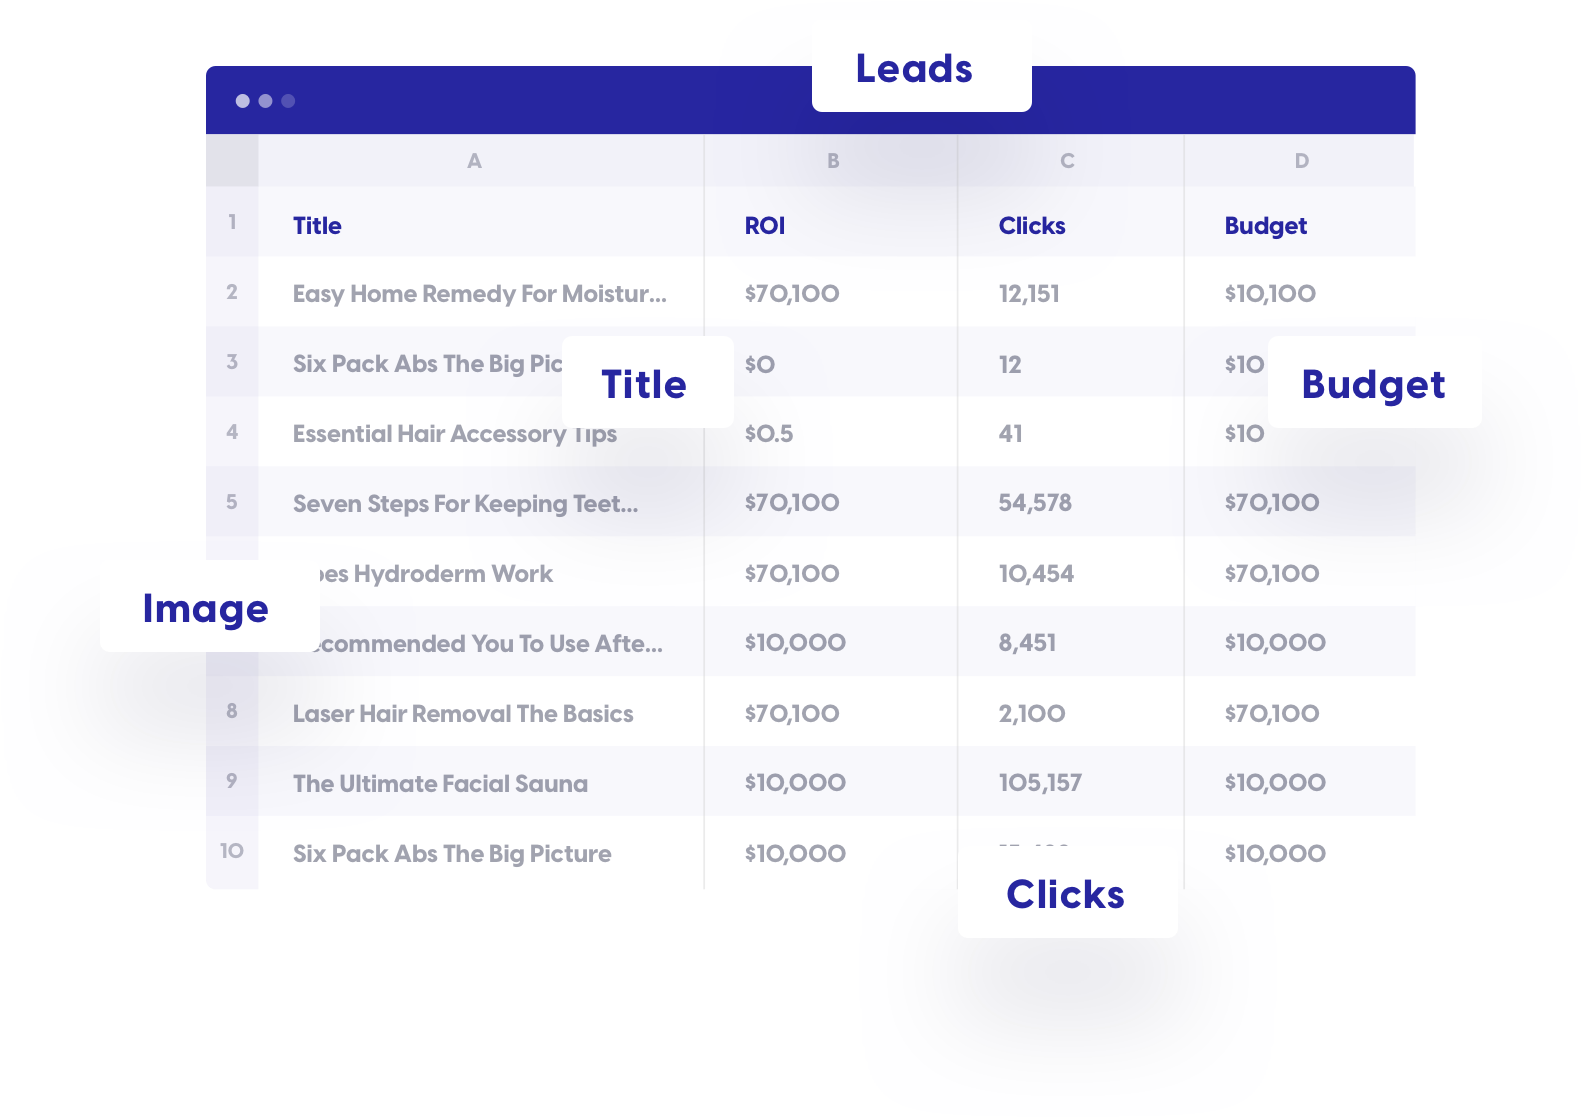 csv_export / Native Video Advertising Guide for 2020